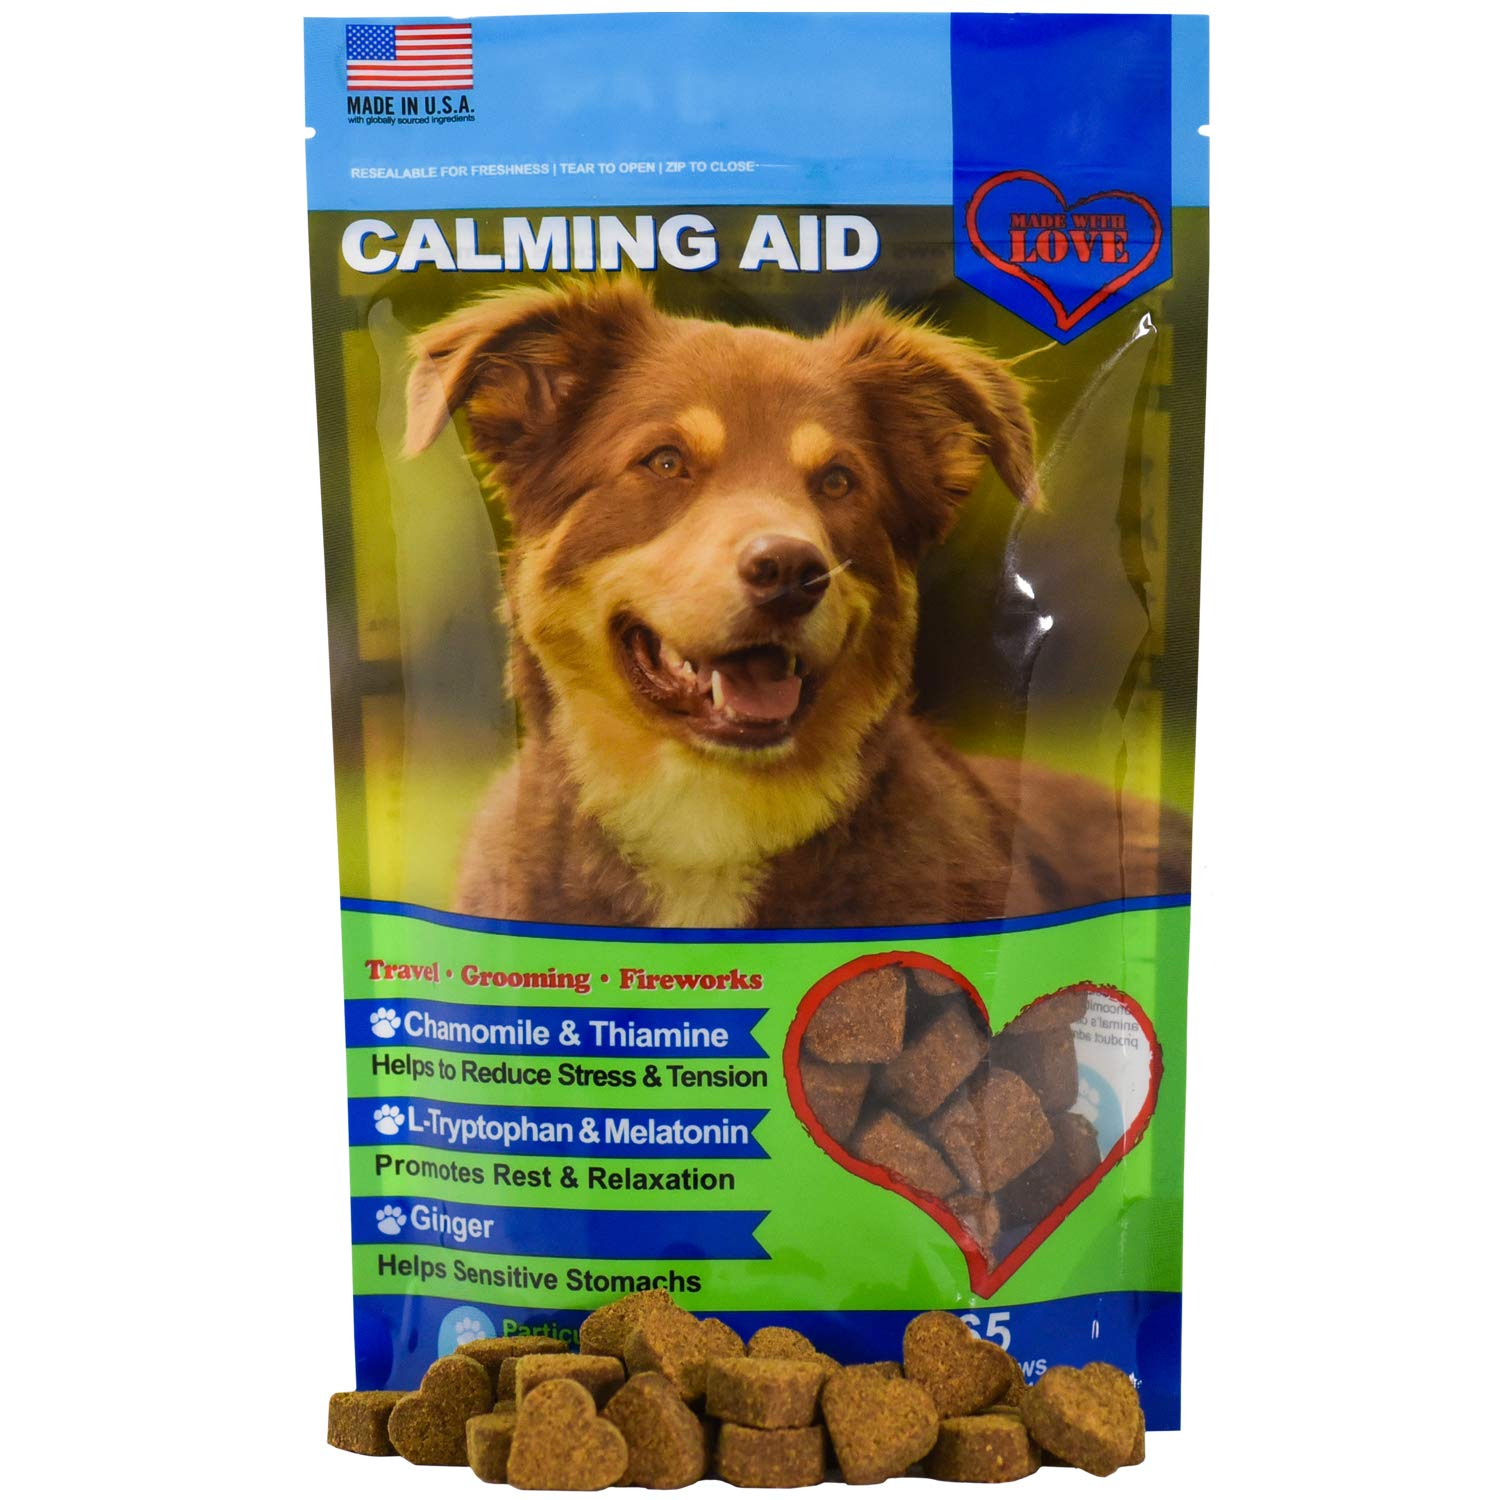 Calming Treats for Dogs - Melatonin, L Tryptophan, Chamomile Flower, Passion Flower and Thiamine Mononitrate by Particular Paws